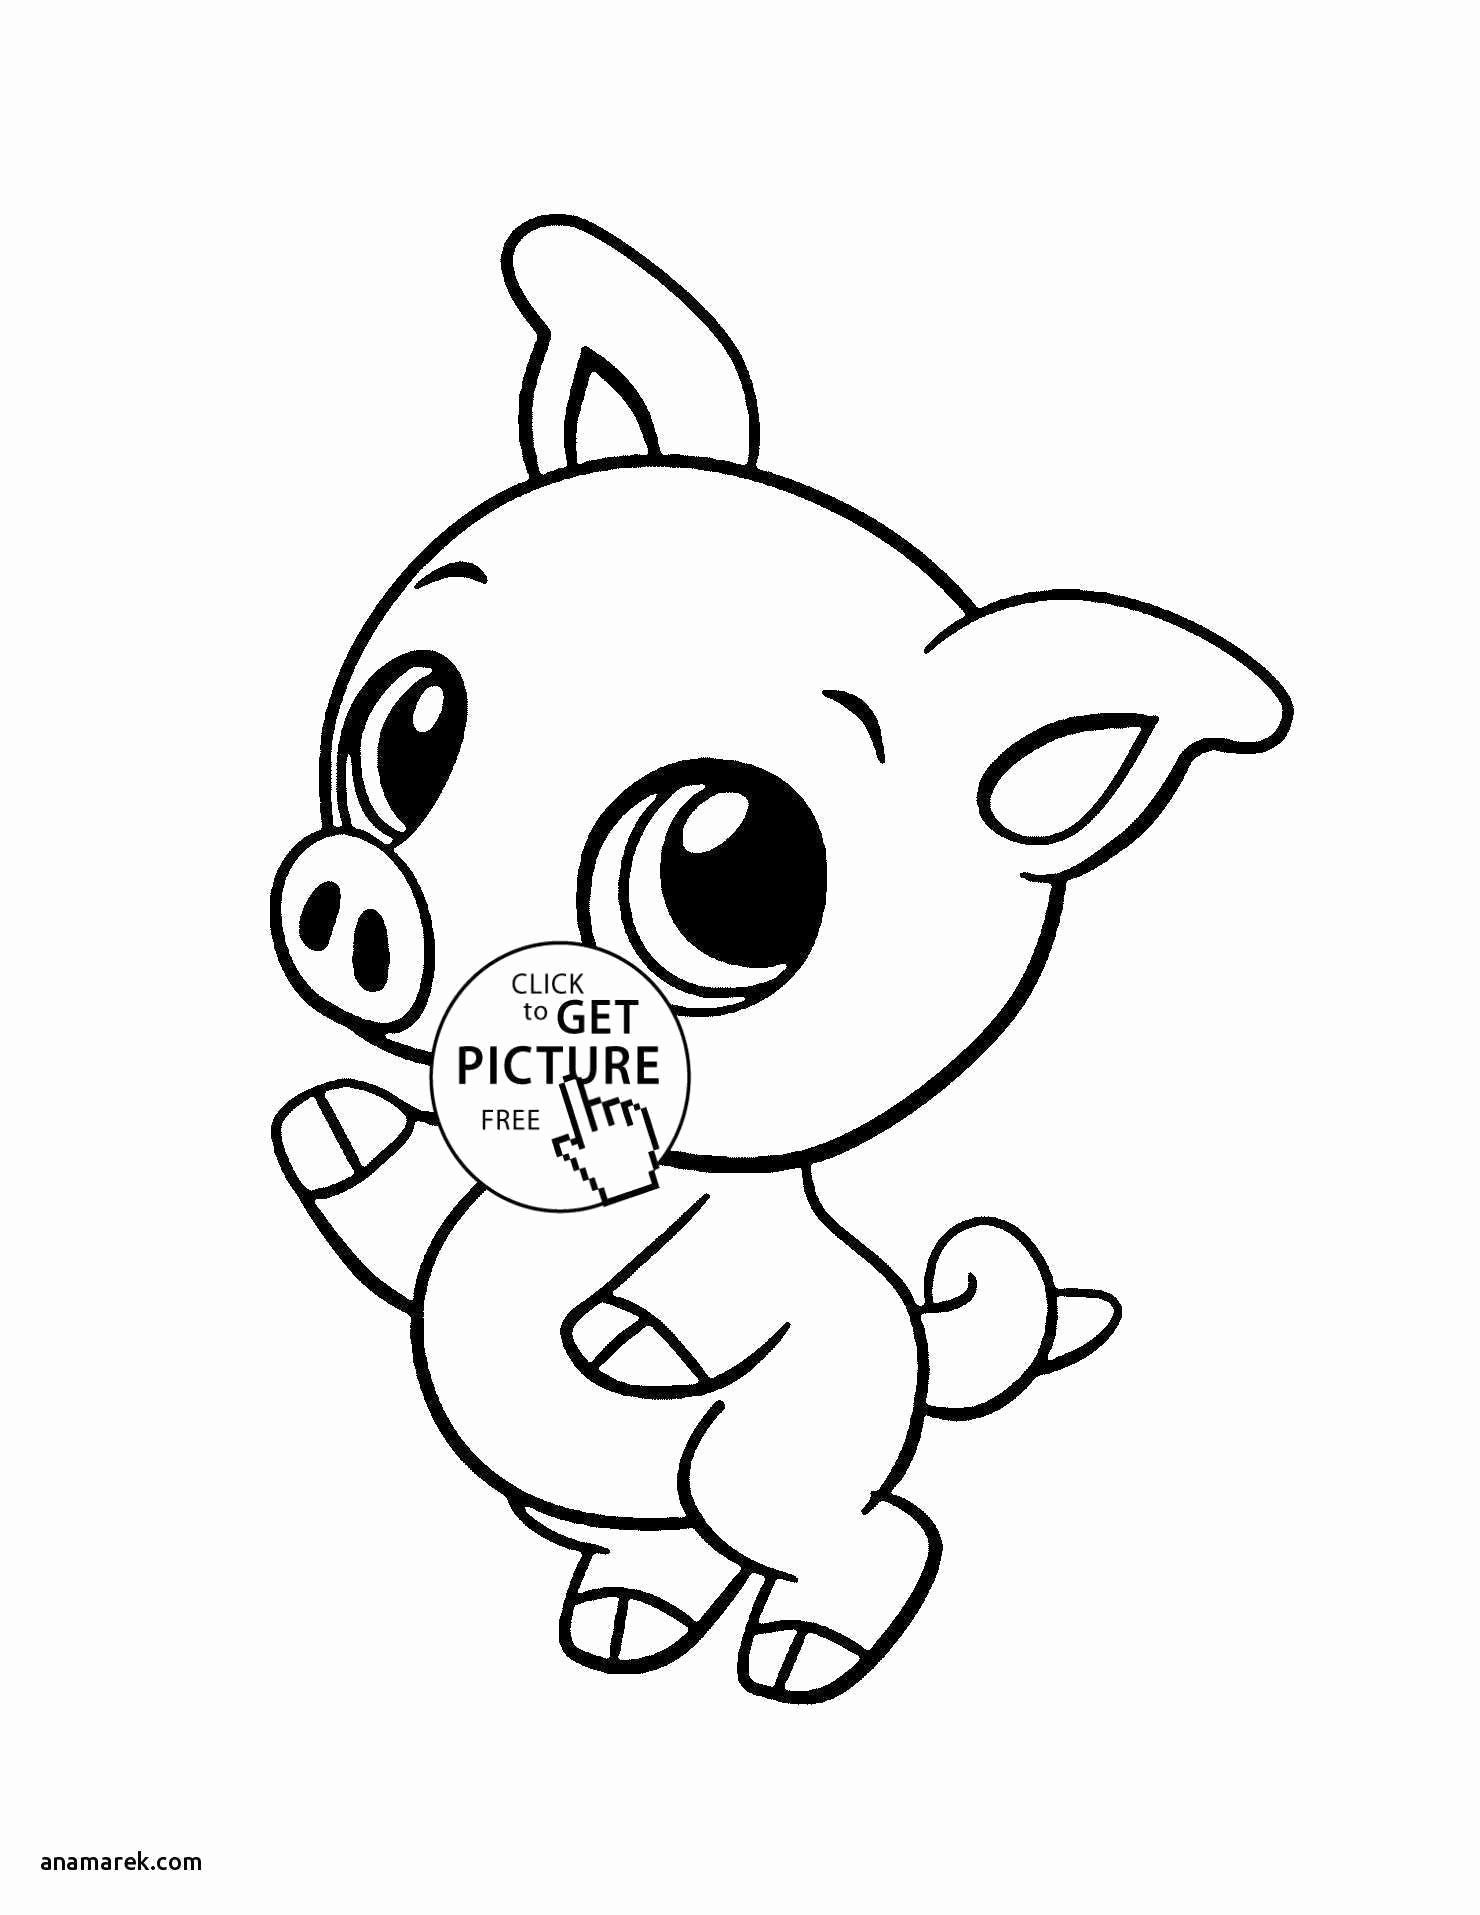 Elmo Halloween Coloring Pages Best Of Coloring Pages Halloween Coloring Books In Bulk I Farm Animal Coloring Pages Unicorn Coloring Pages Animal Coloring Books